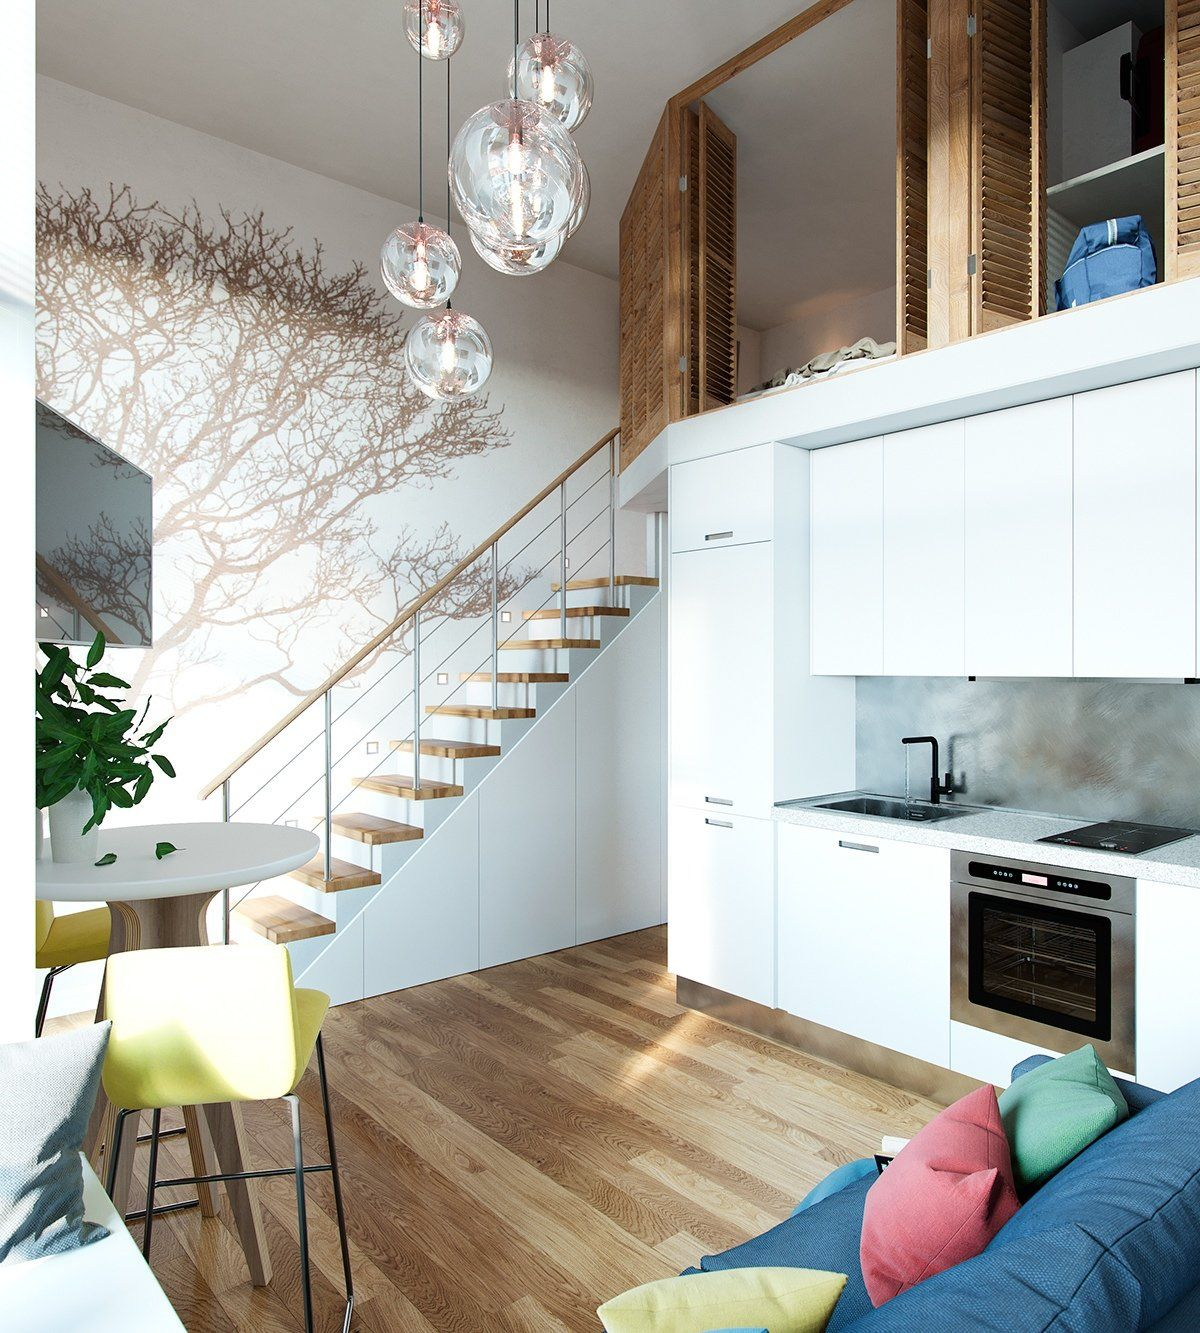 Small homes that use lofts to gain more floor space muebles y